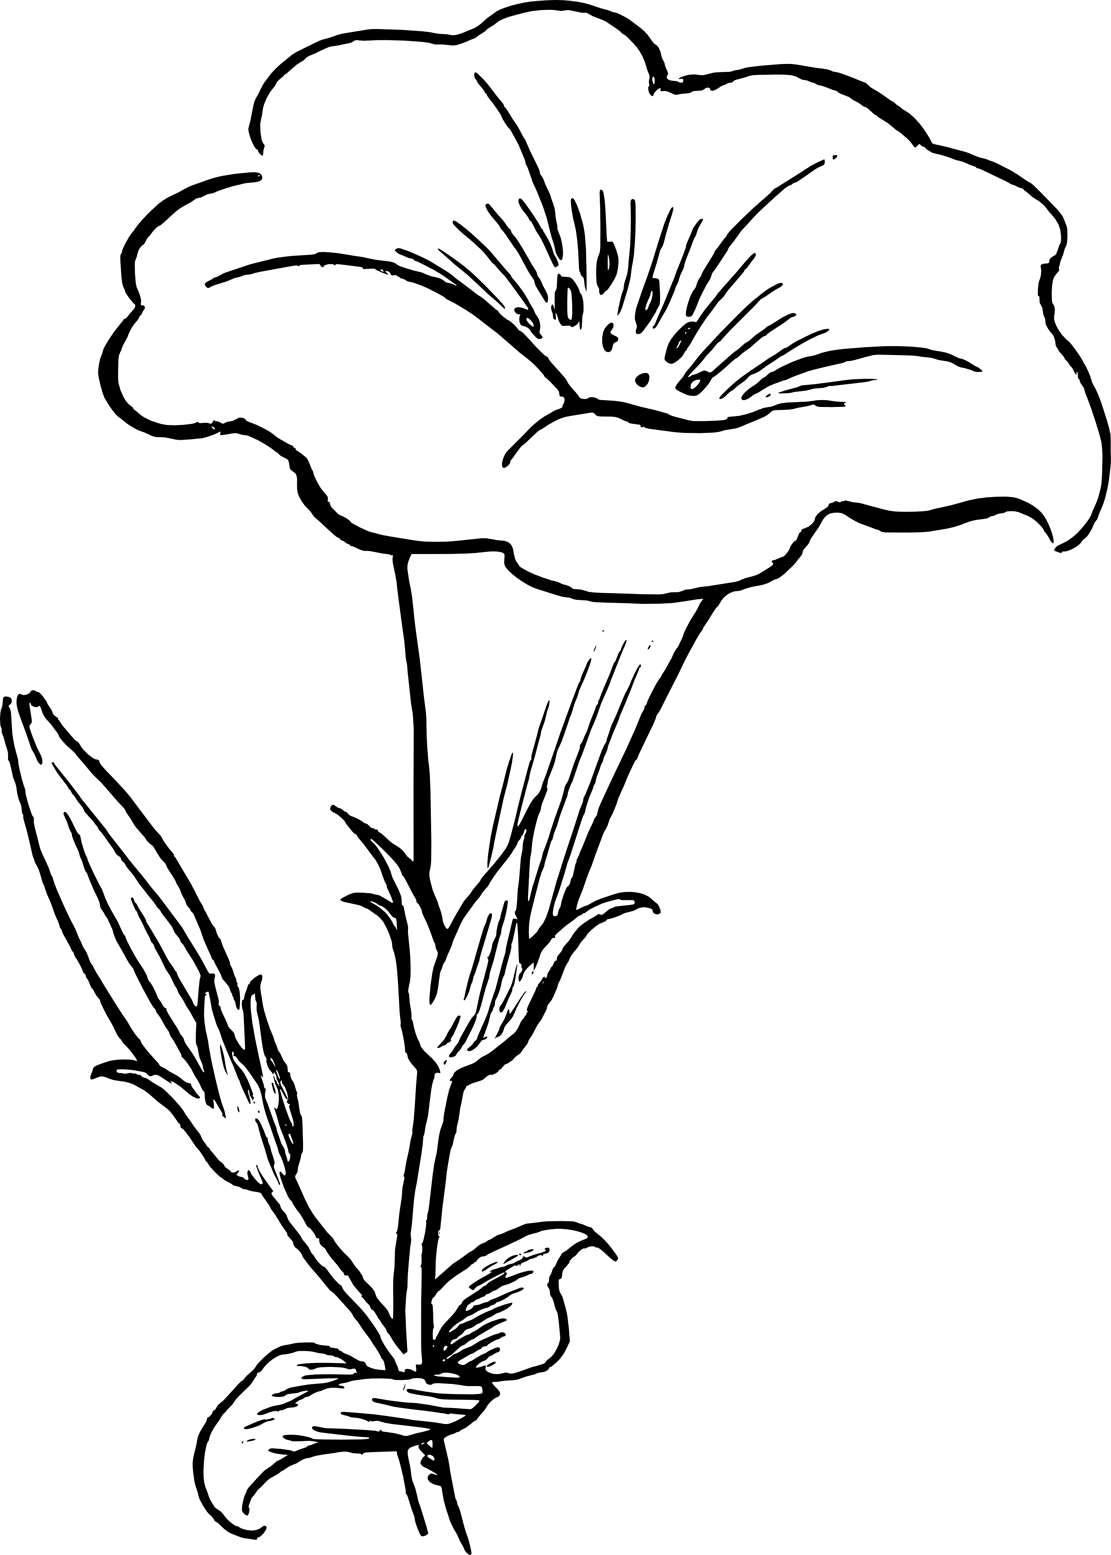 image black and white download Floral Drawings